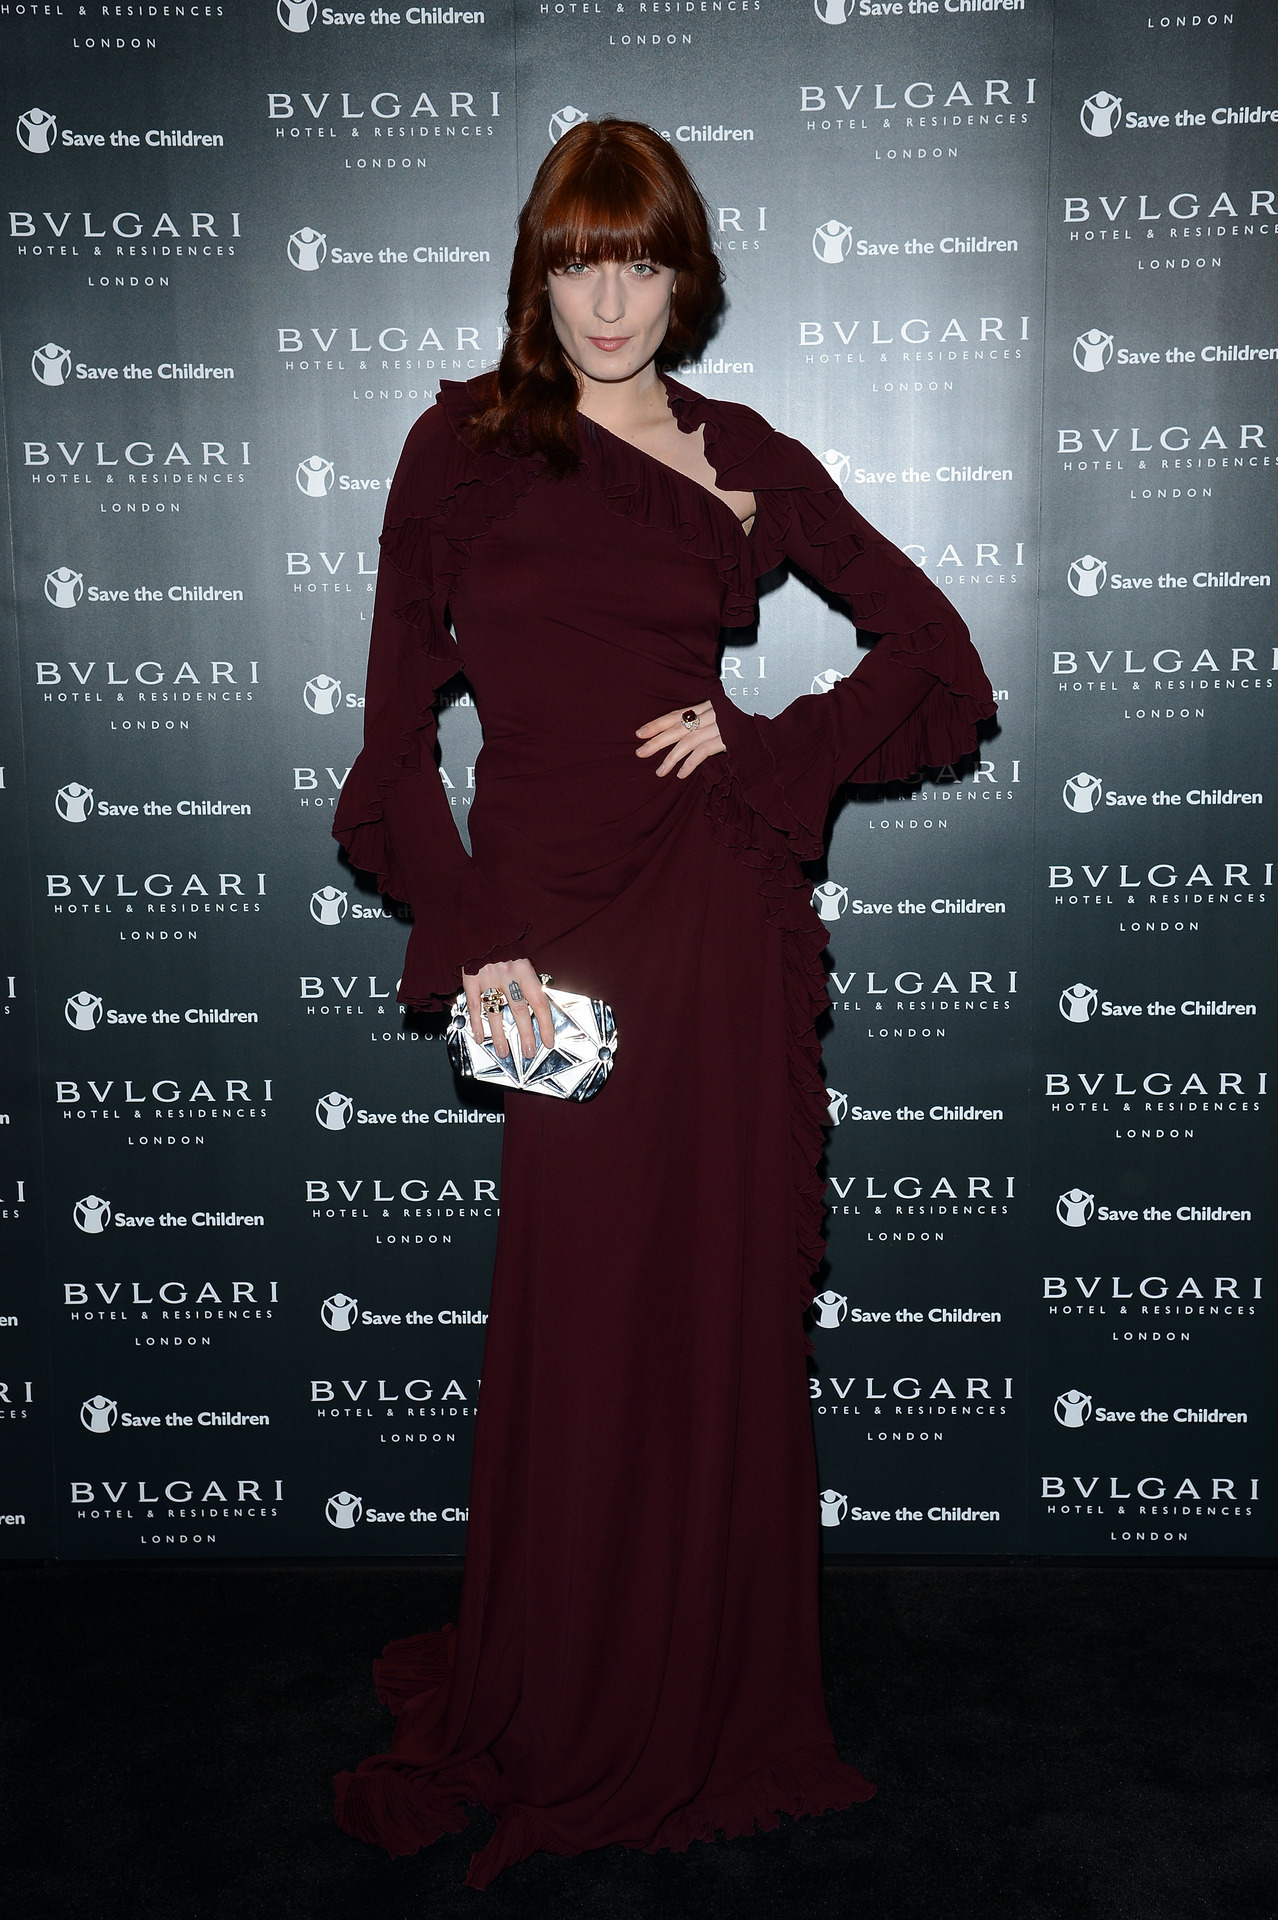 Florence Welch (in Gucci) at the Bulgari Hotel and Residences official opening in London, June 14 How is she even REAL?!  She looks like a stained glass window COME TO LIFE.